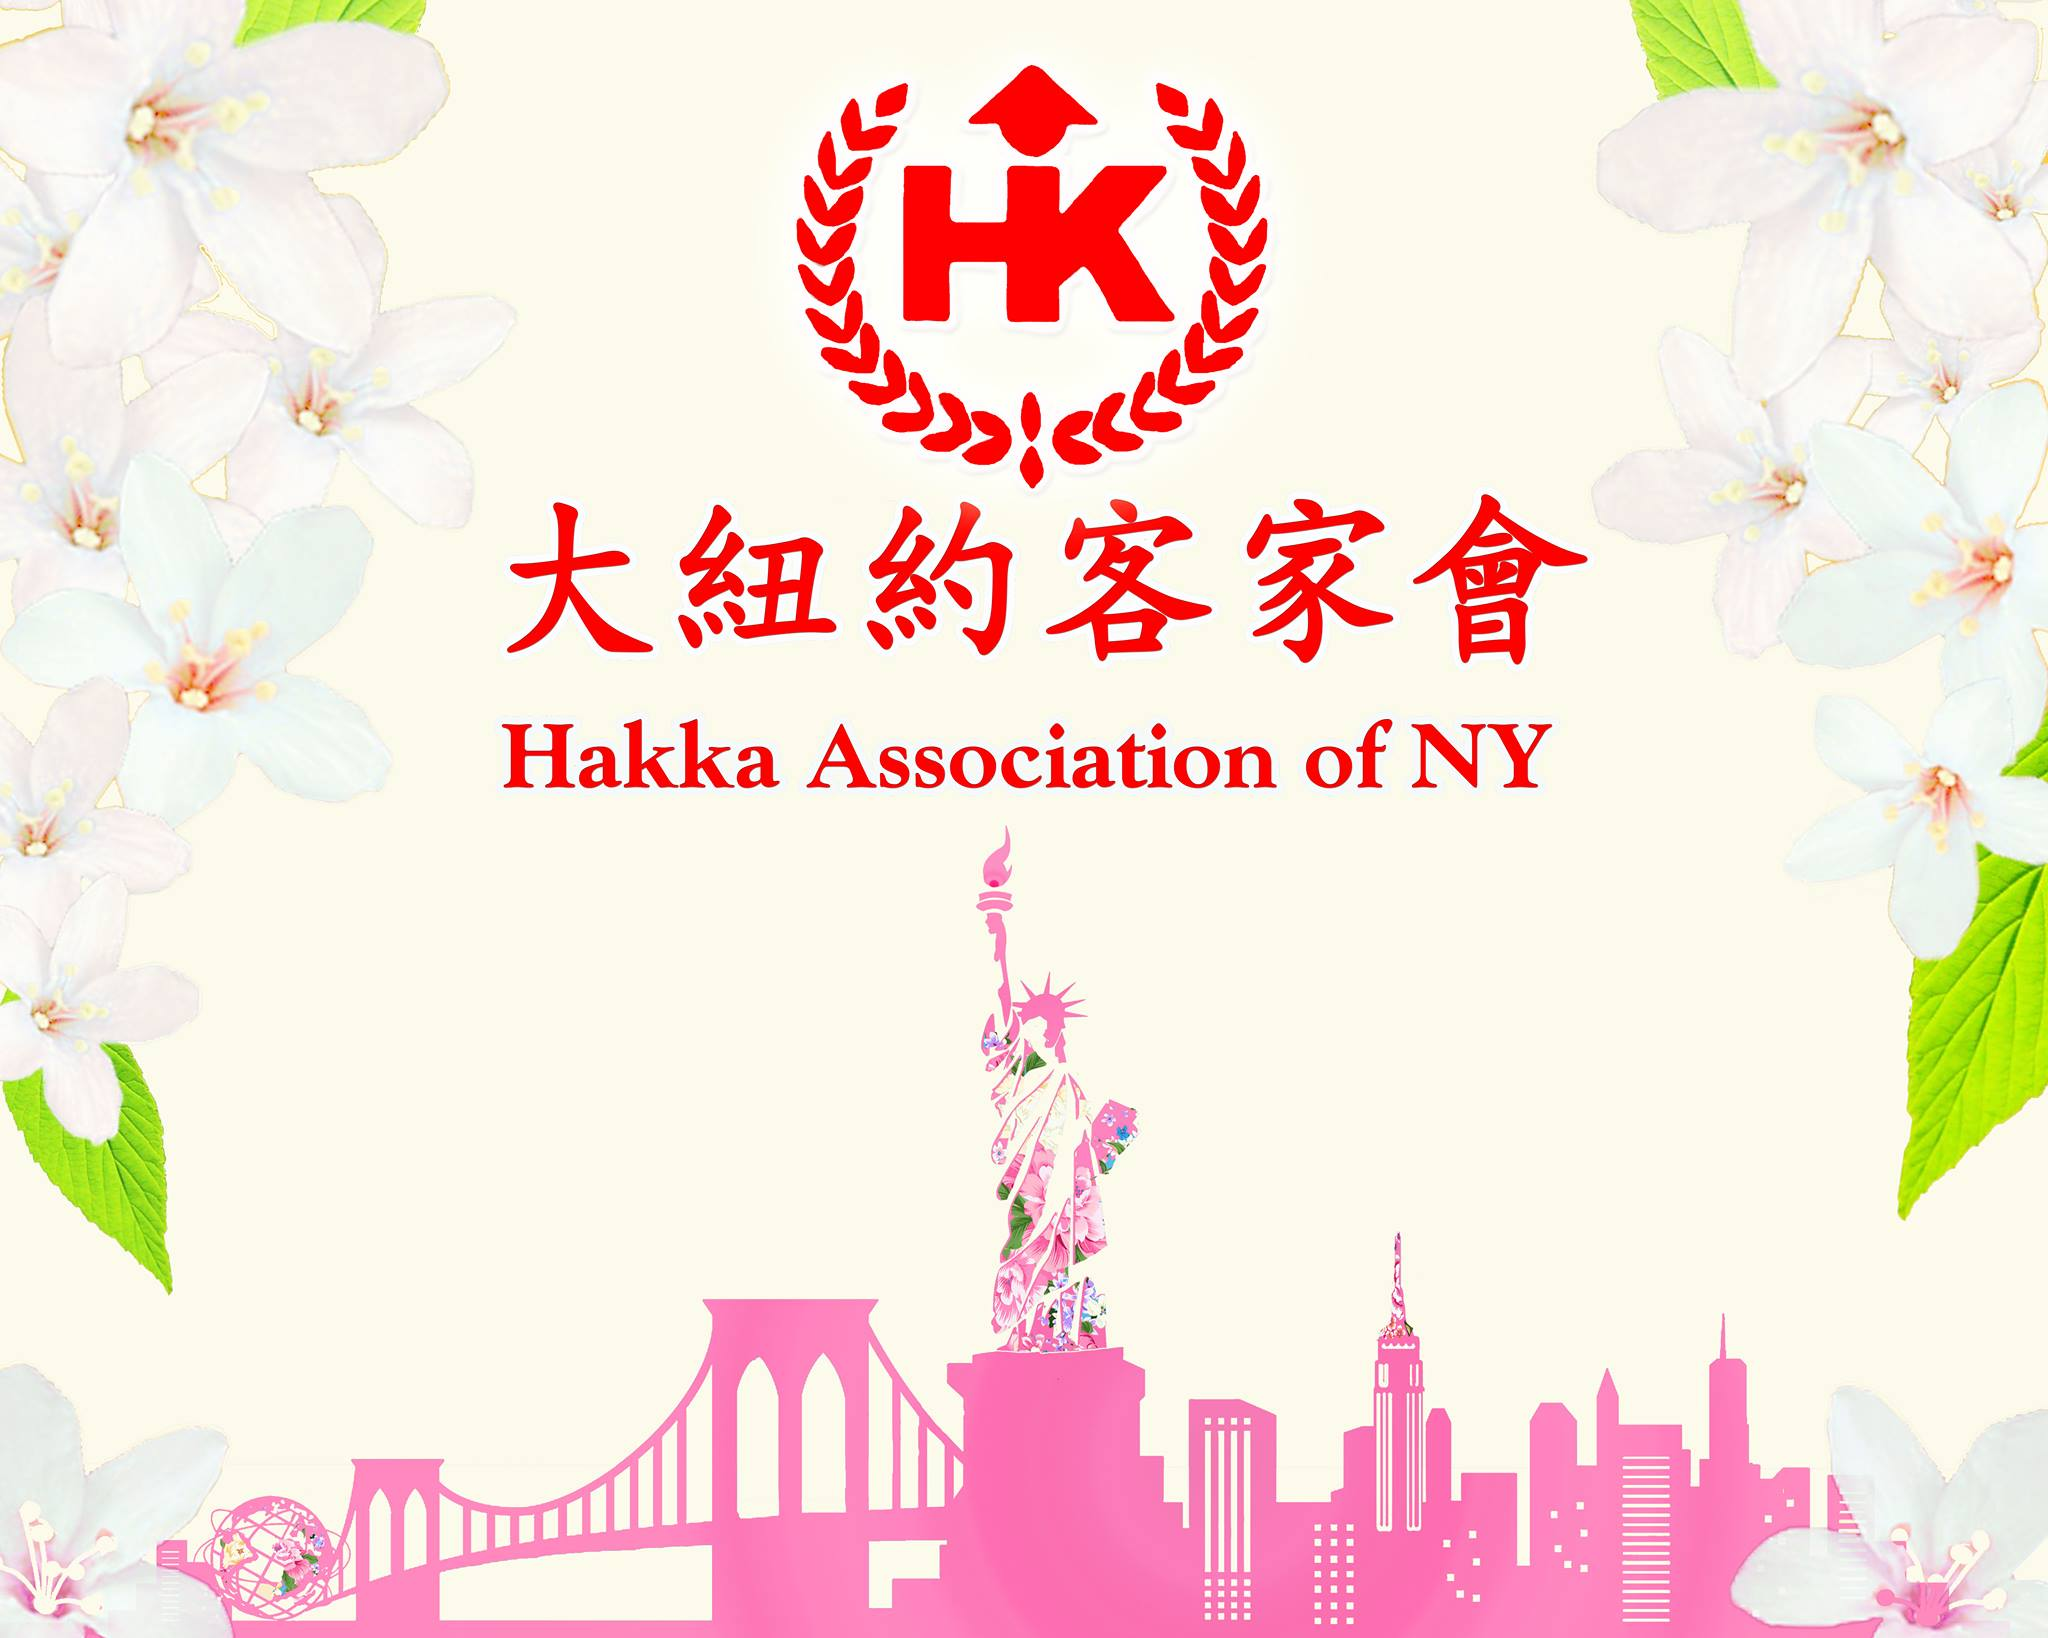 Hakka Association of Greater New York (大紐約客家會的活動)